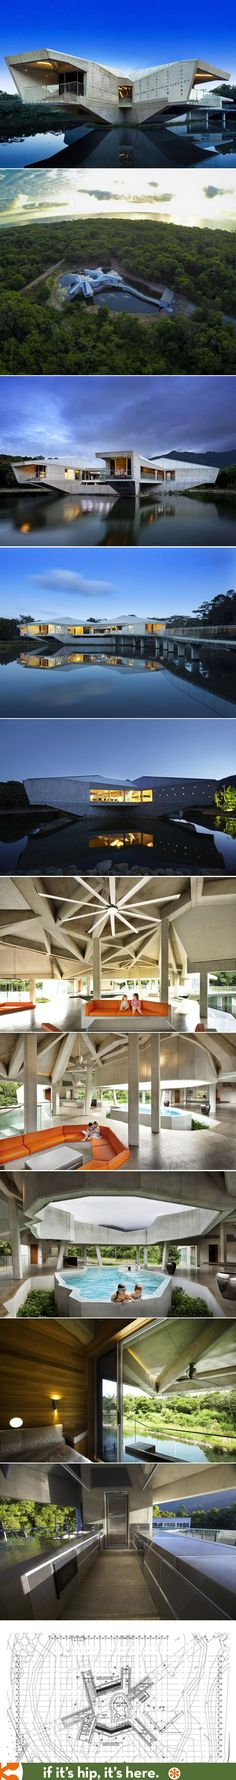 The Alkira Resort (aka The Stamp House) by Charles Wright, Australia. Creative Architecture, Futuristic Architecture, Amazing Architecture, Interior Architecture, Interior Design, Design Homes, House Design, Charles Wright, Contemporary Houses